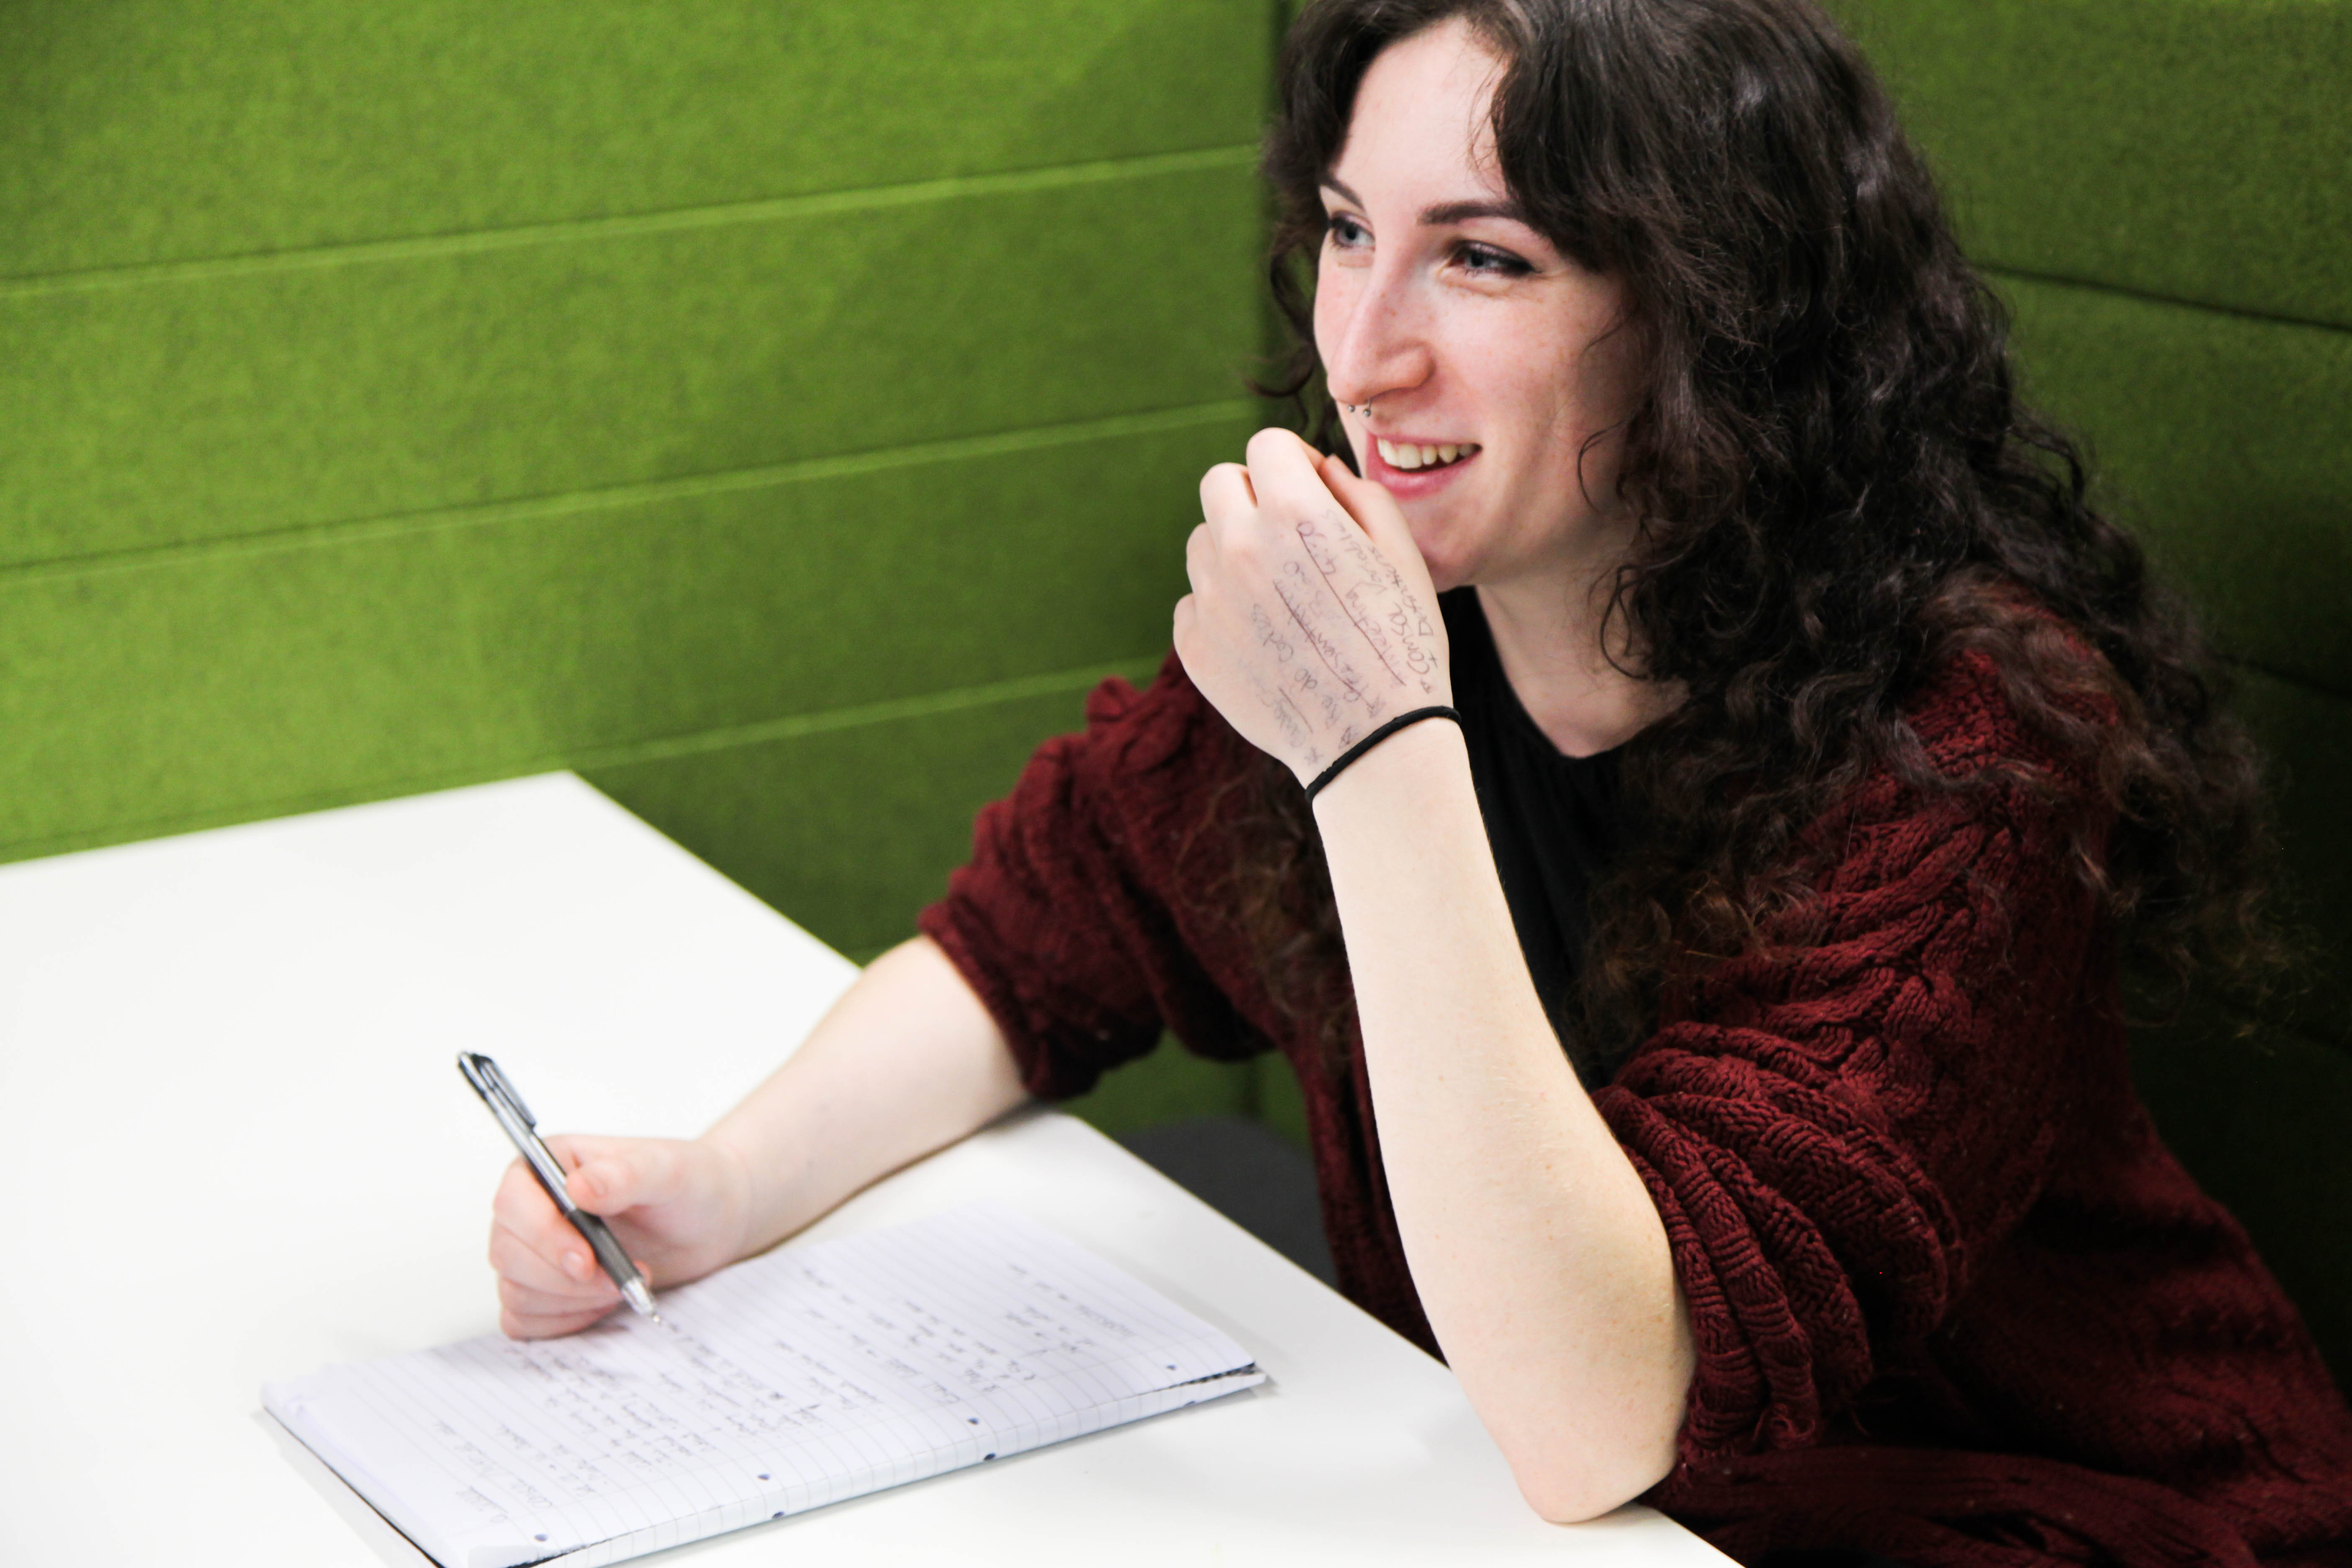 Image - Student smiling whilst writing at table.